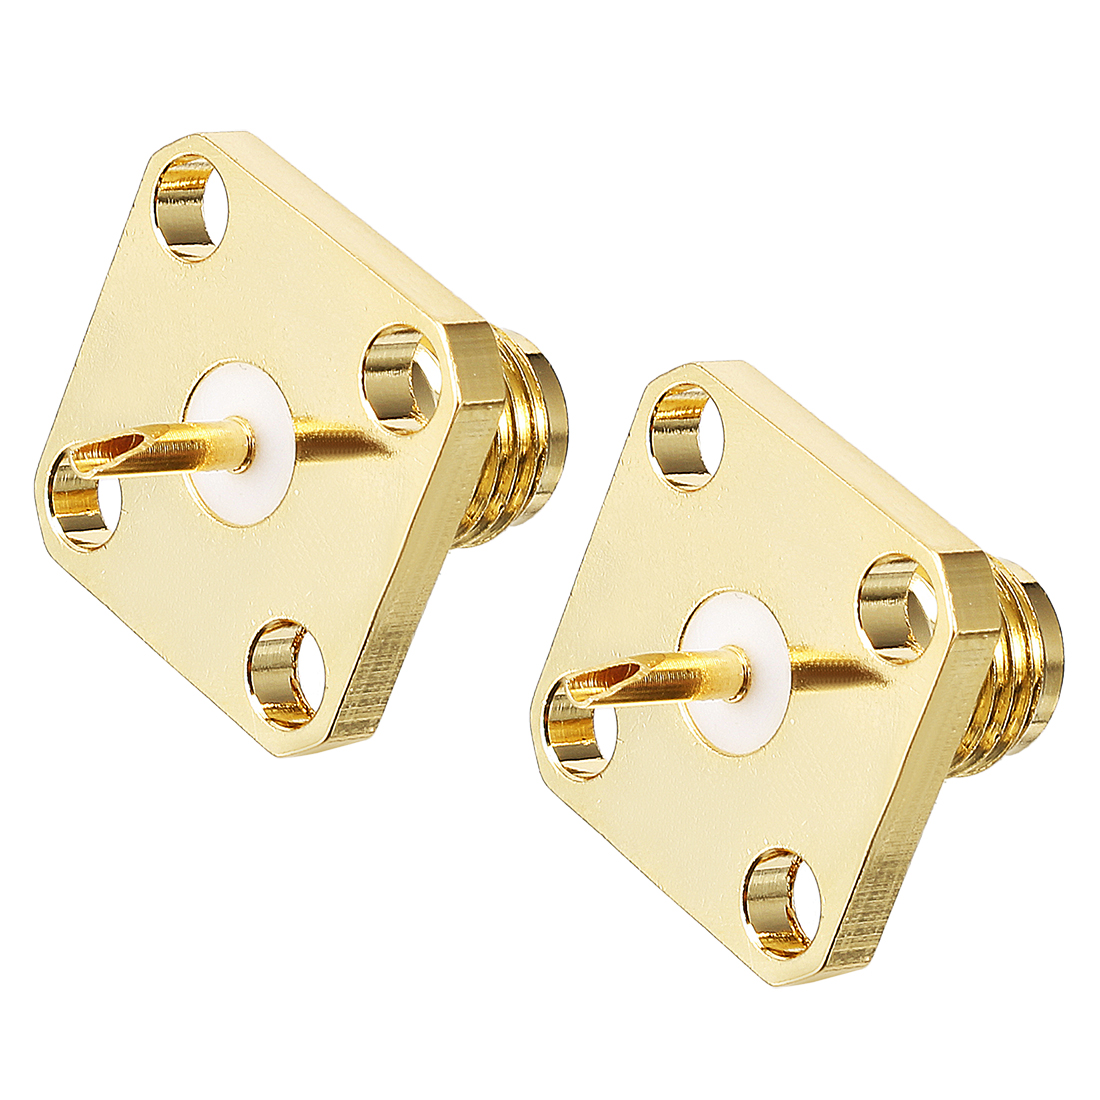 2pcs Gold Tone SMA Female PCB Flange Jack RF Coaxial Adapter Connector